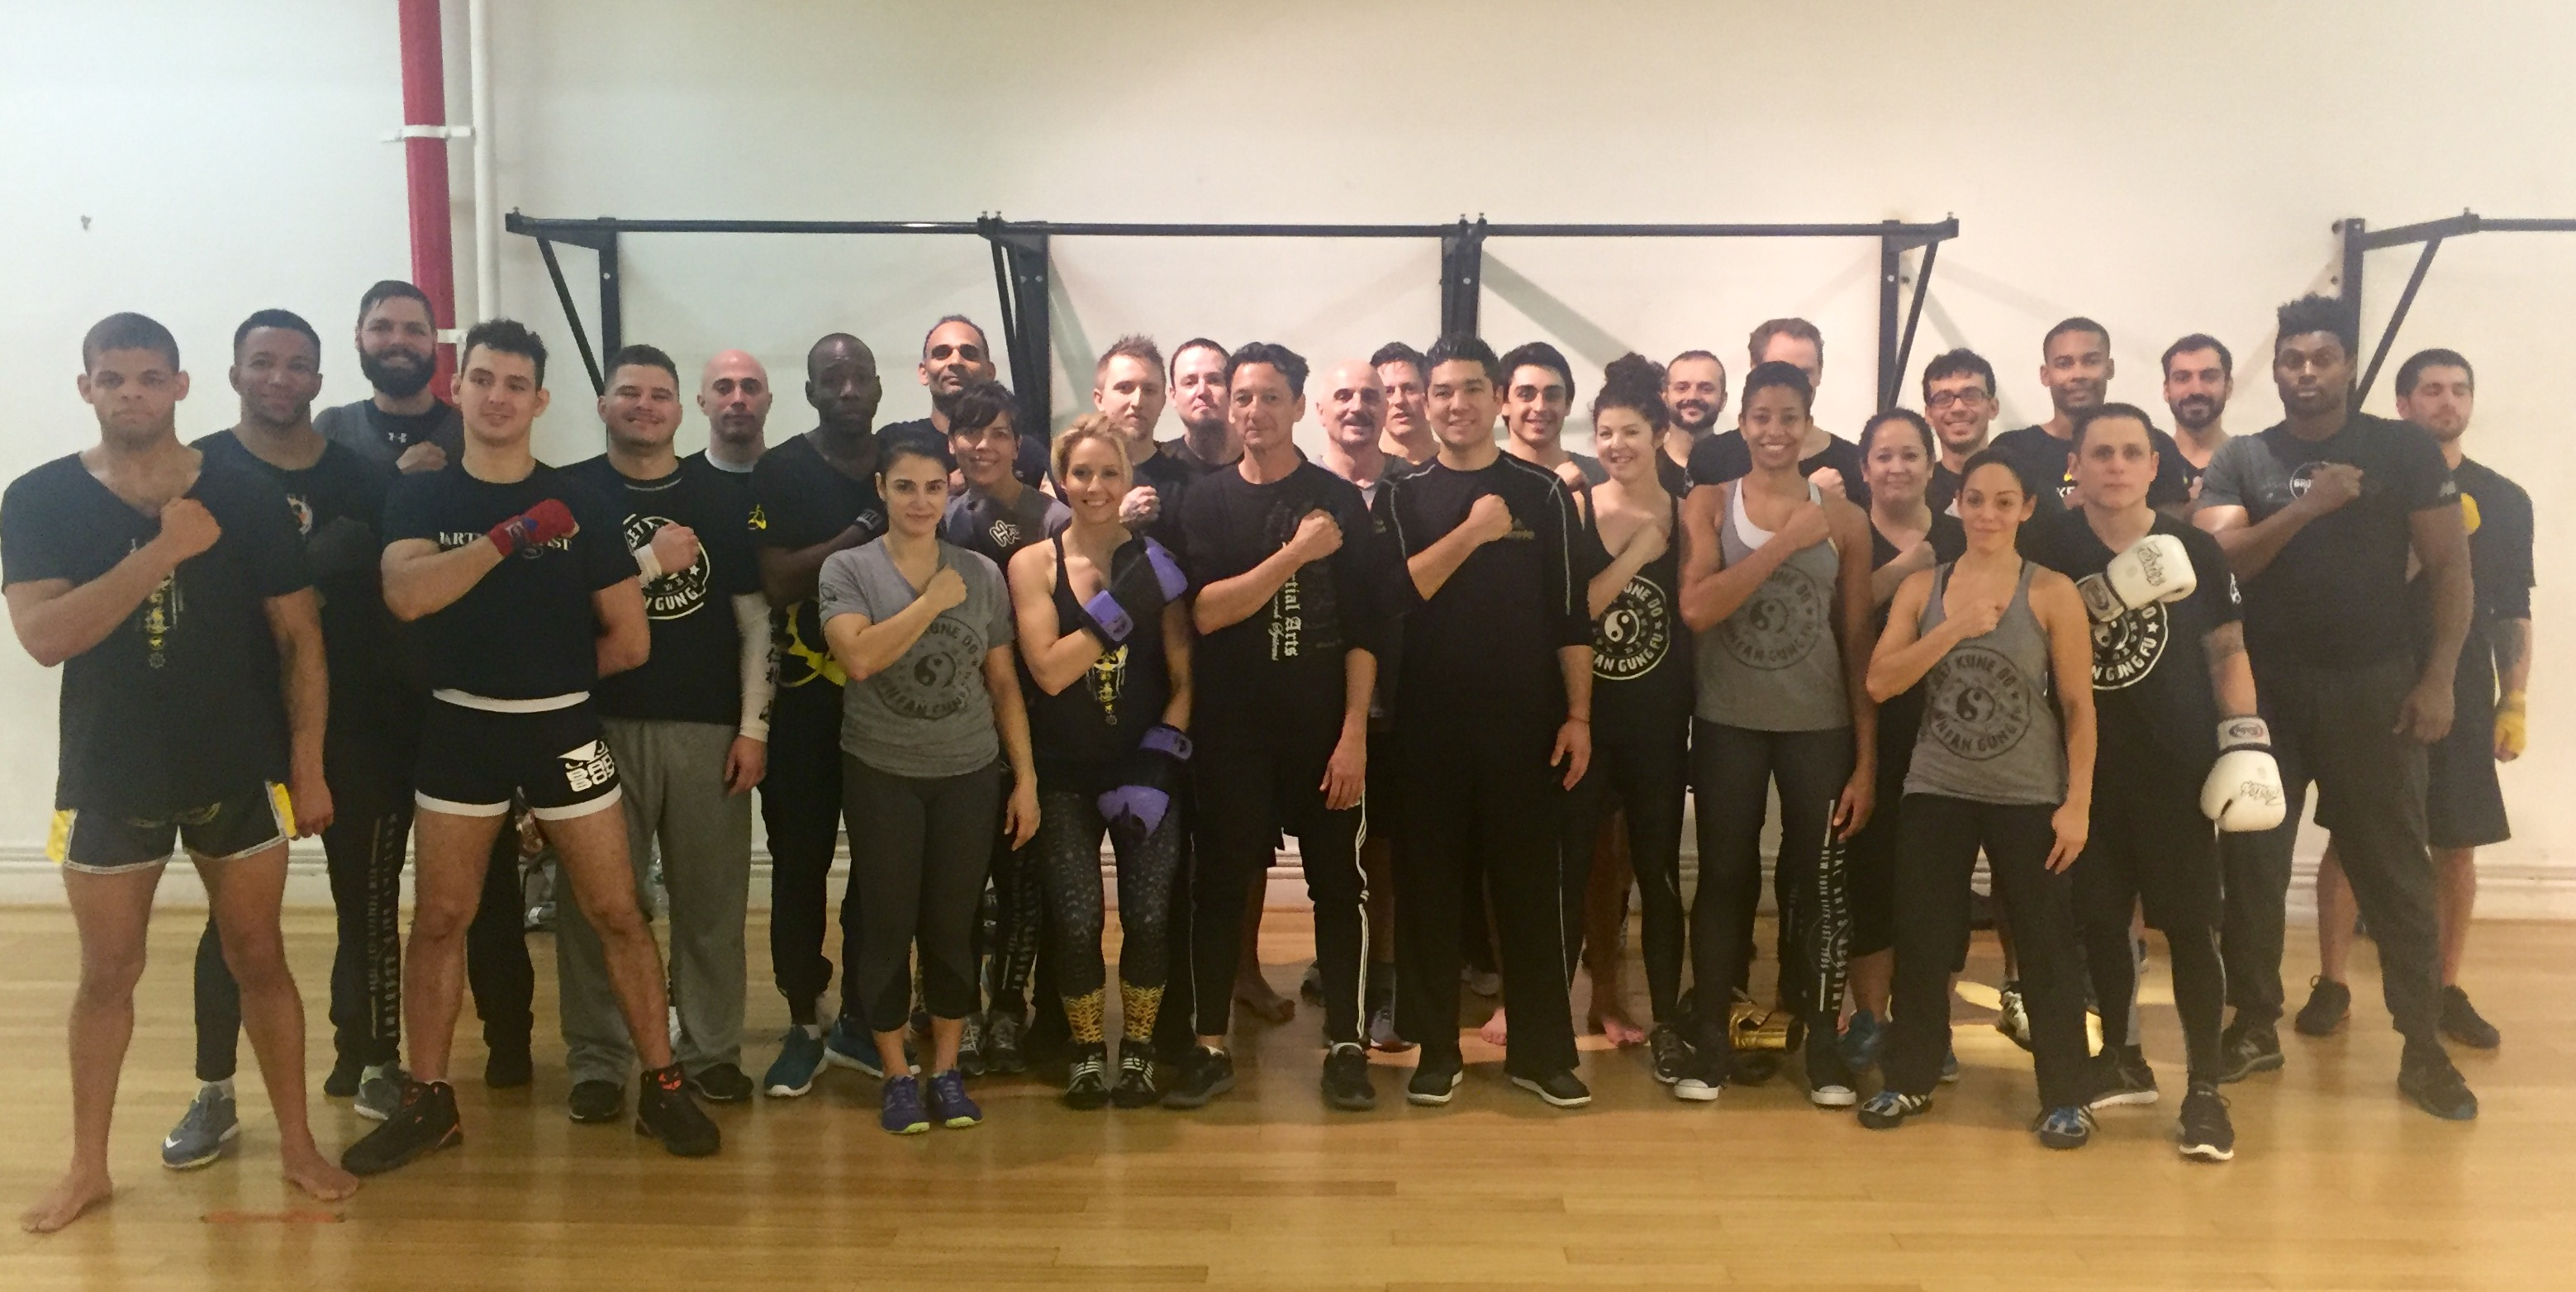 Andersons Martial Arts NYC Savate (French Kickboxing) Seminar Recap